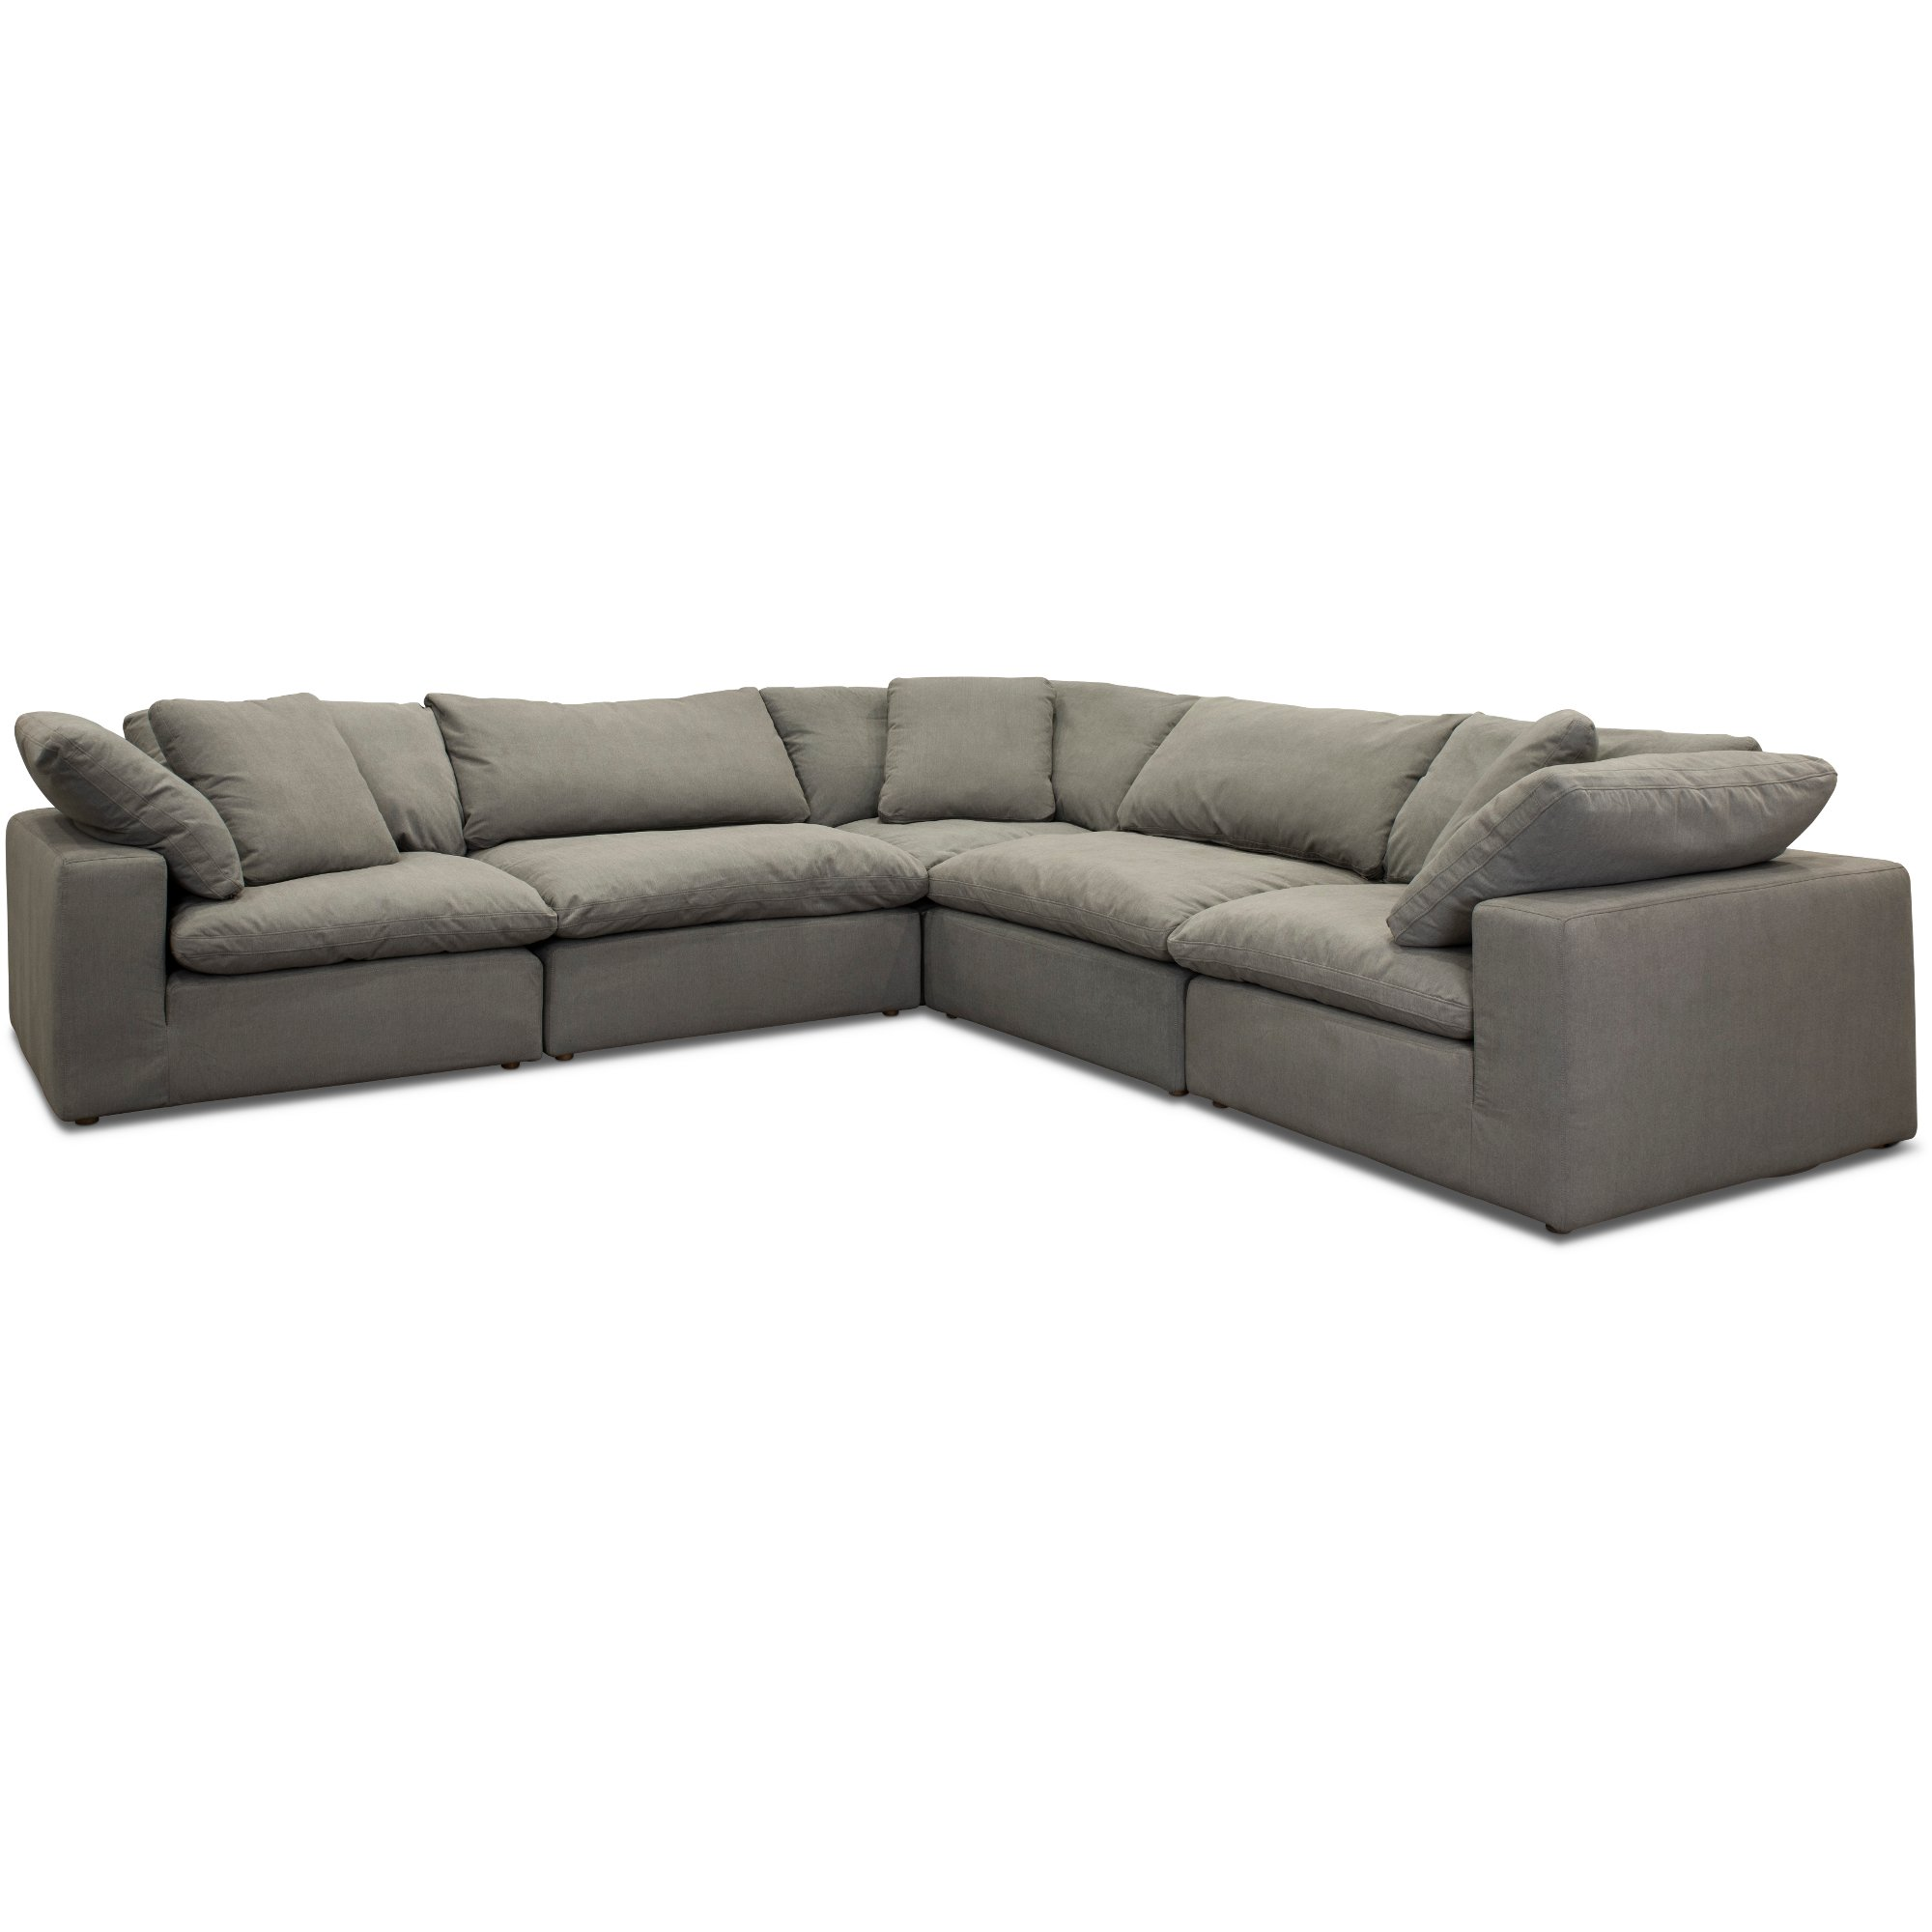 Slate Gray 5 Piece Sectional Sofa - Peyton | RC Willey Furniture Store